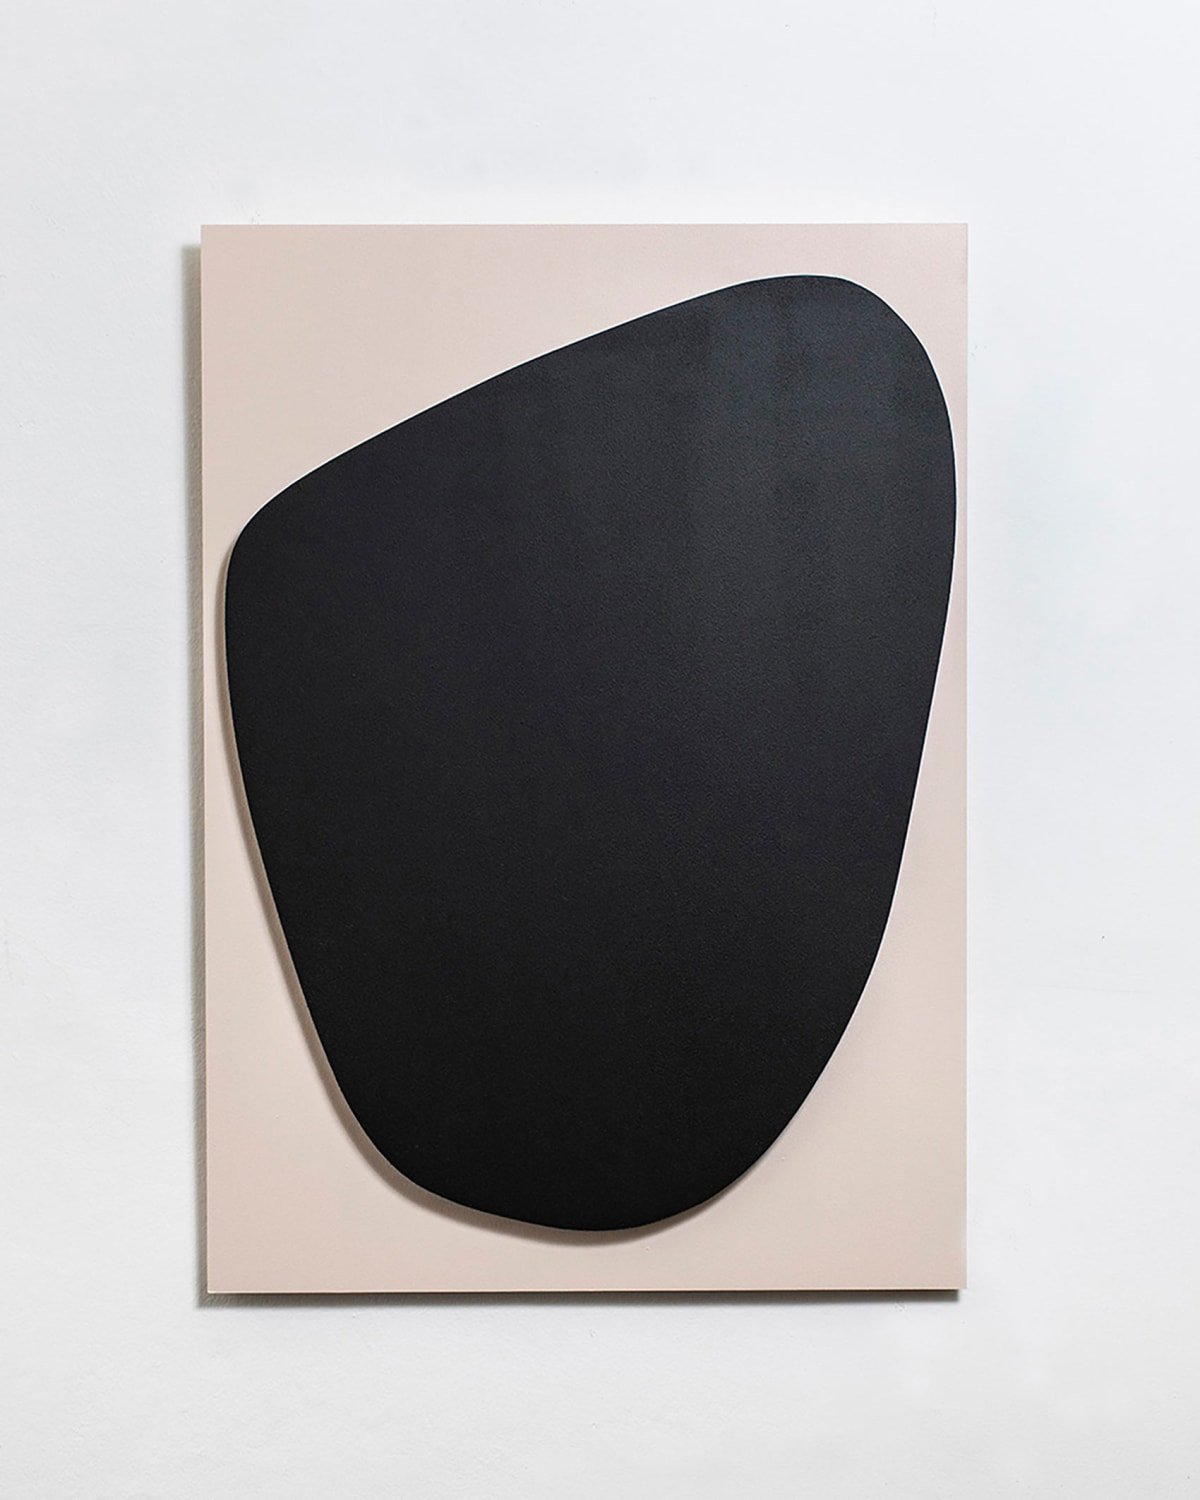 zs art gallery, shows the artwork from their artist Marie-France Goerens showing a light pink background with a black shape